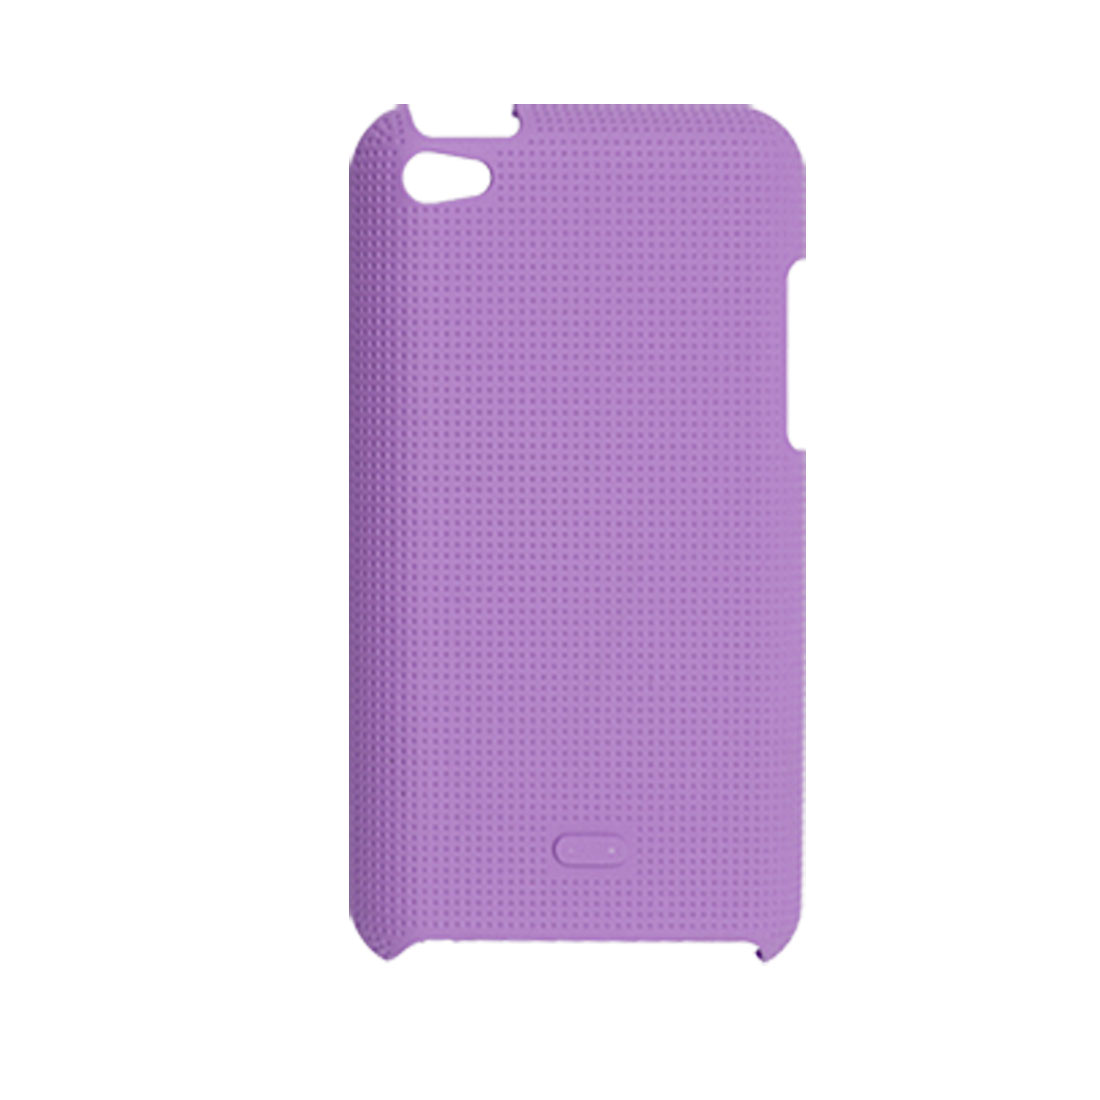 Antislip Back Case Protector Purple for iPod Touch 4G